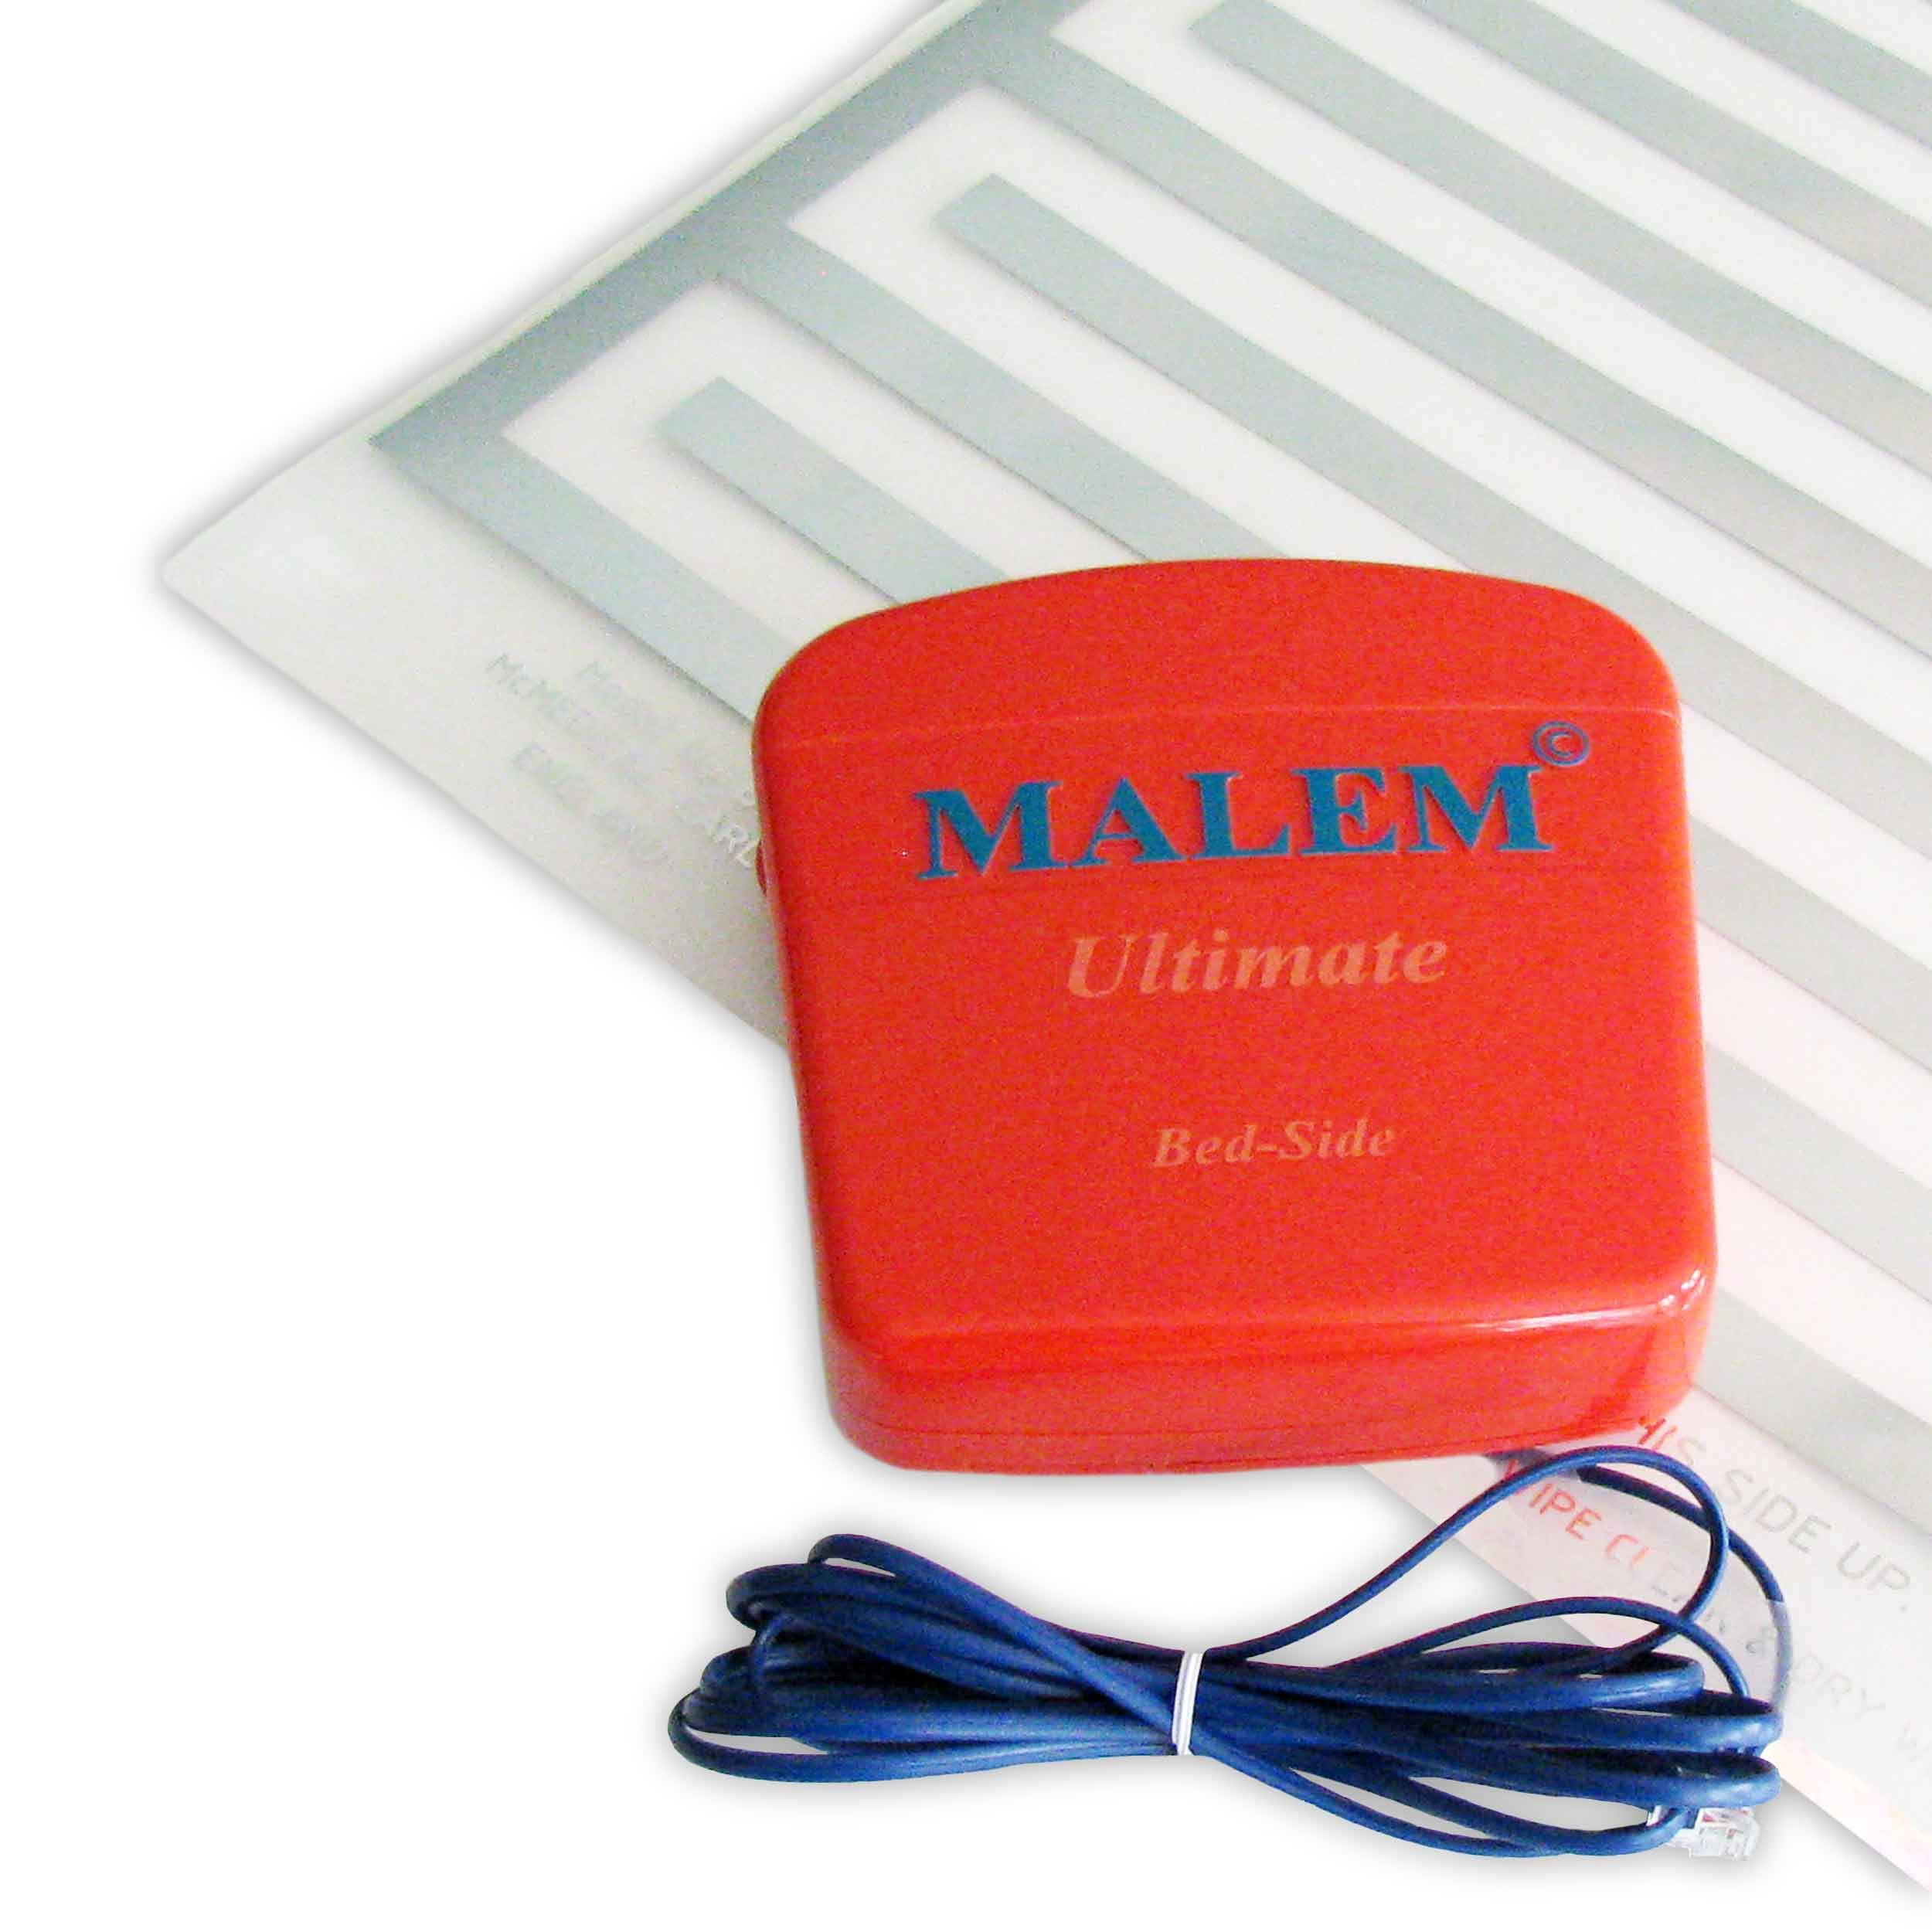 Malem Bed-Side Bedwetting Enuresis Alarm with Pad [Health and Beauty] by Malem